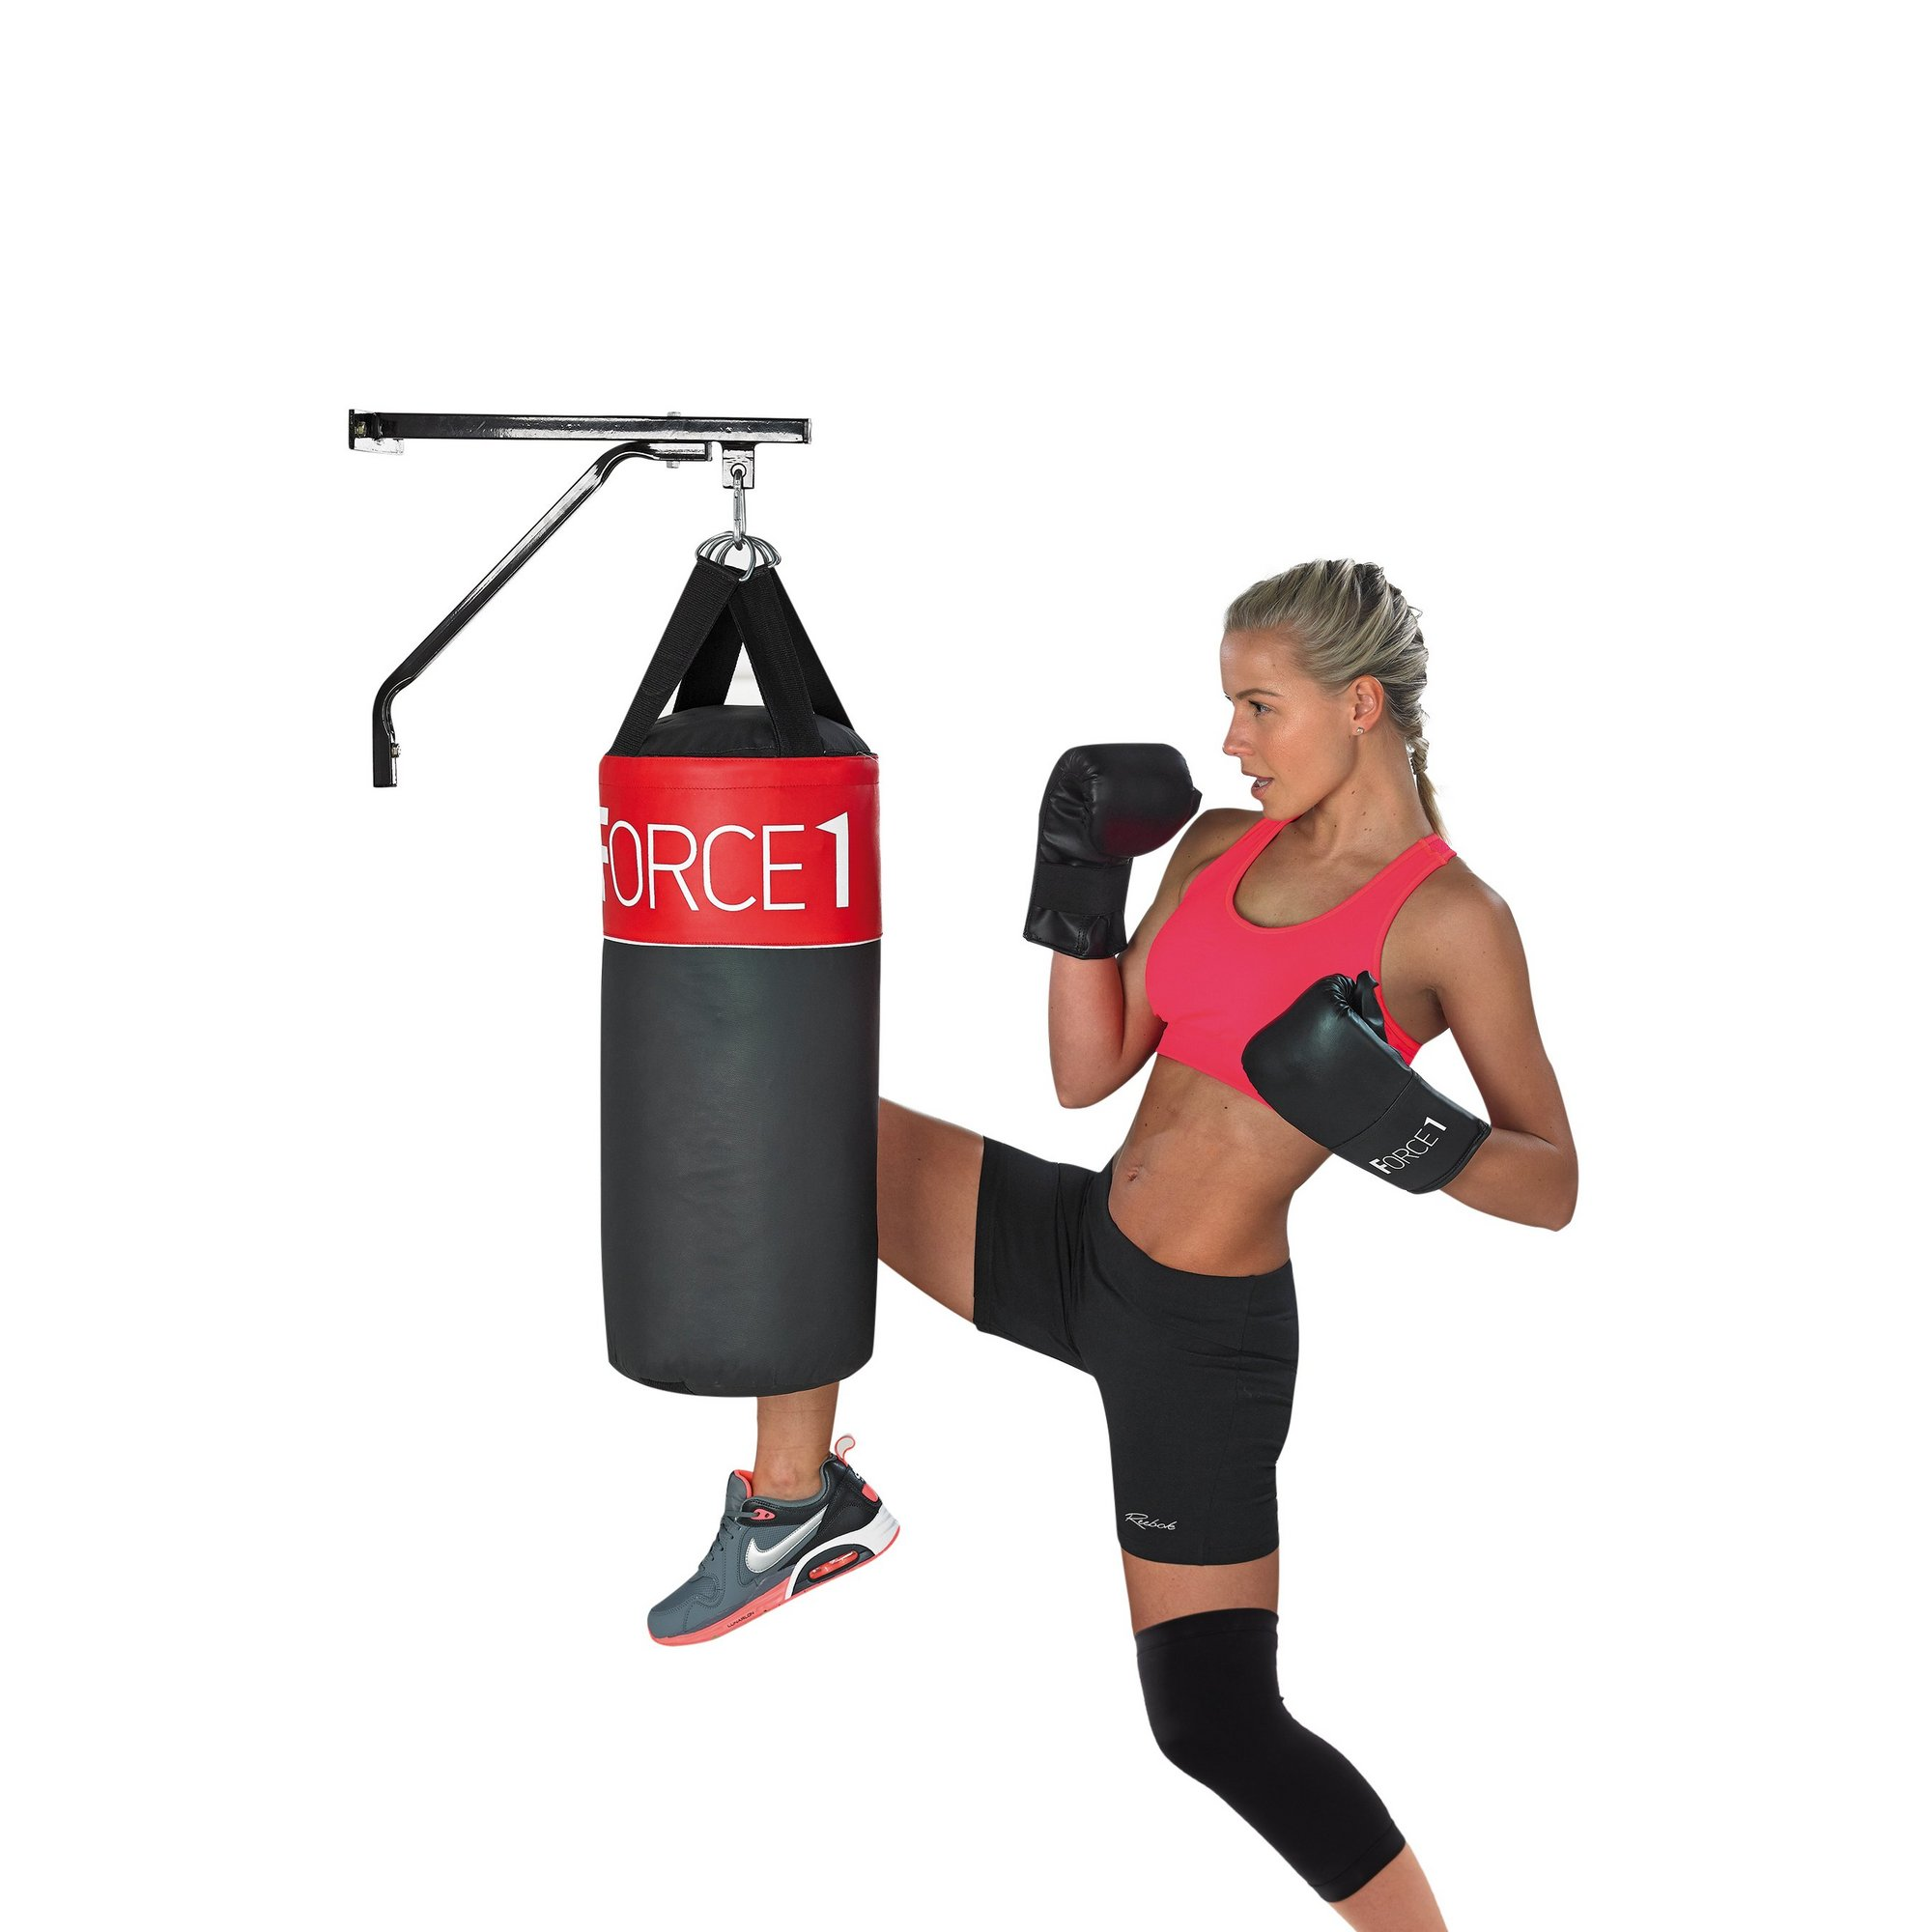 Image of Force1 Complete Boxing Set